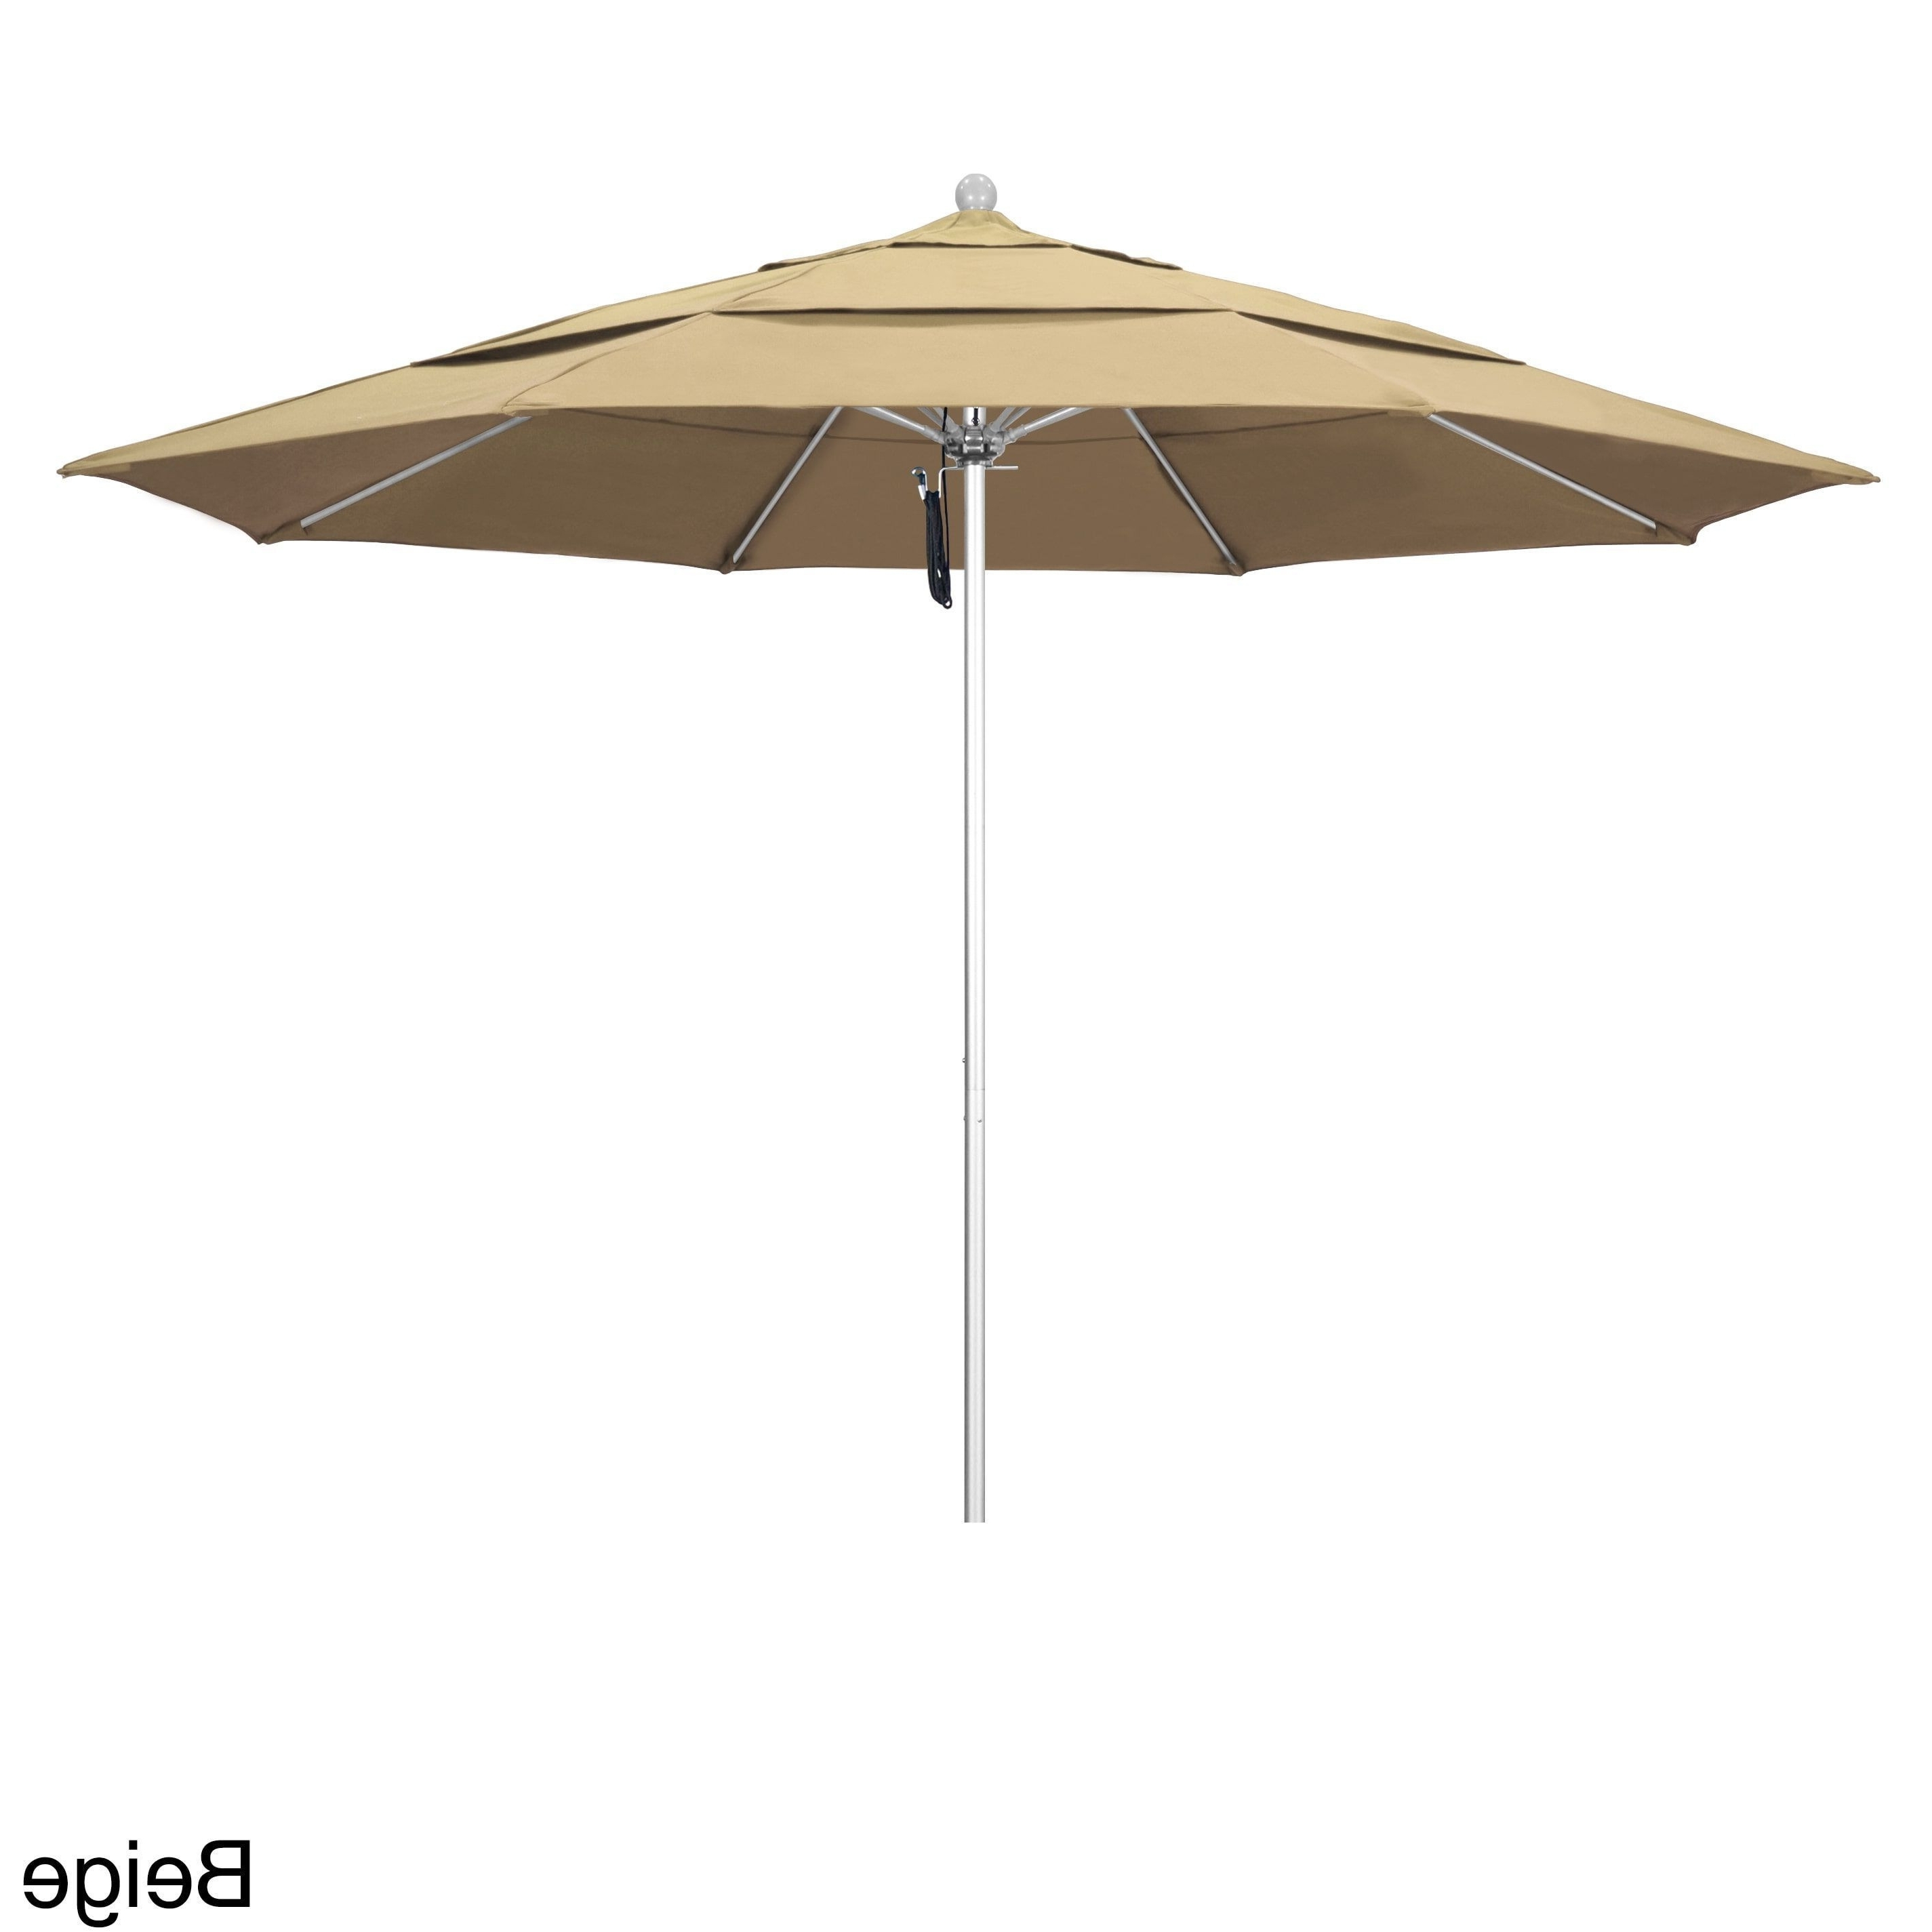 Most Popular Patio Umbrellas For High Wind Areas Intended For Commercial Outdoor Umbrellas Elegant Best For High Wind Areas This (View 8 of 20)